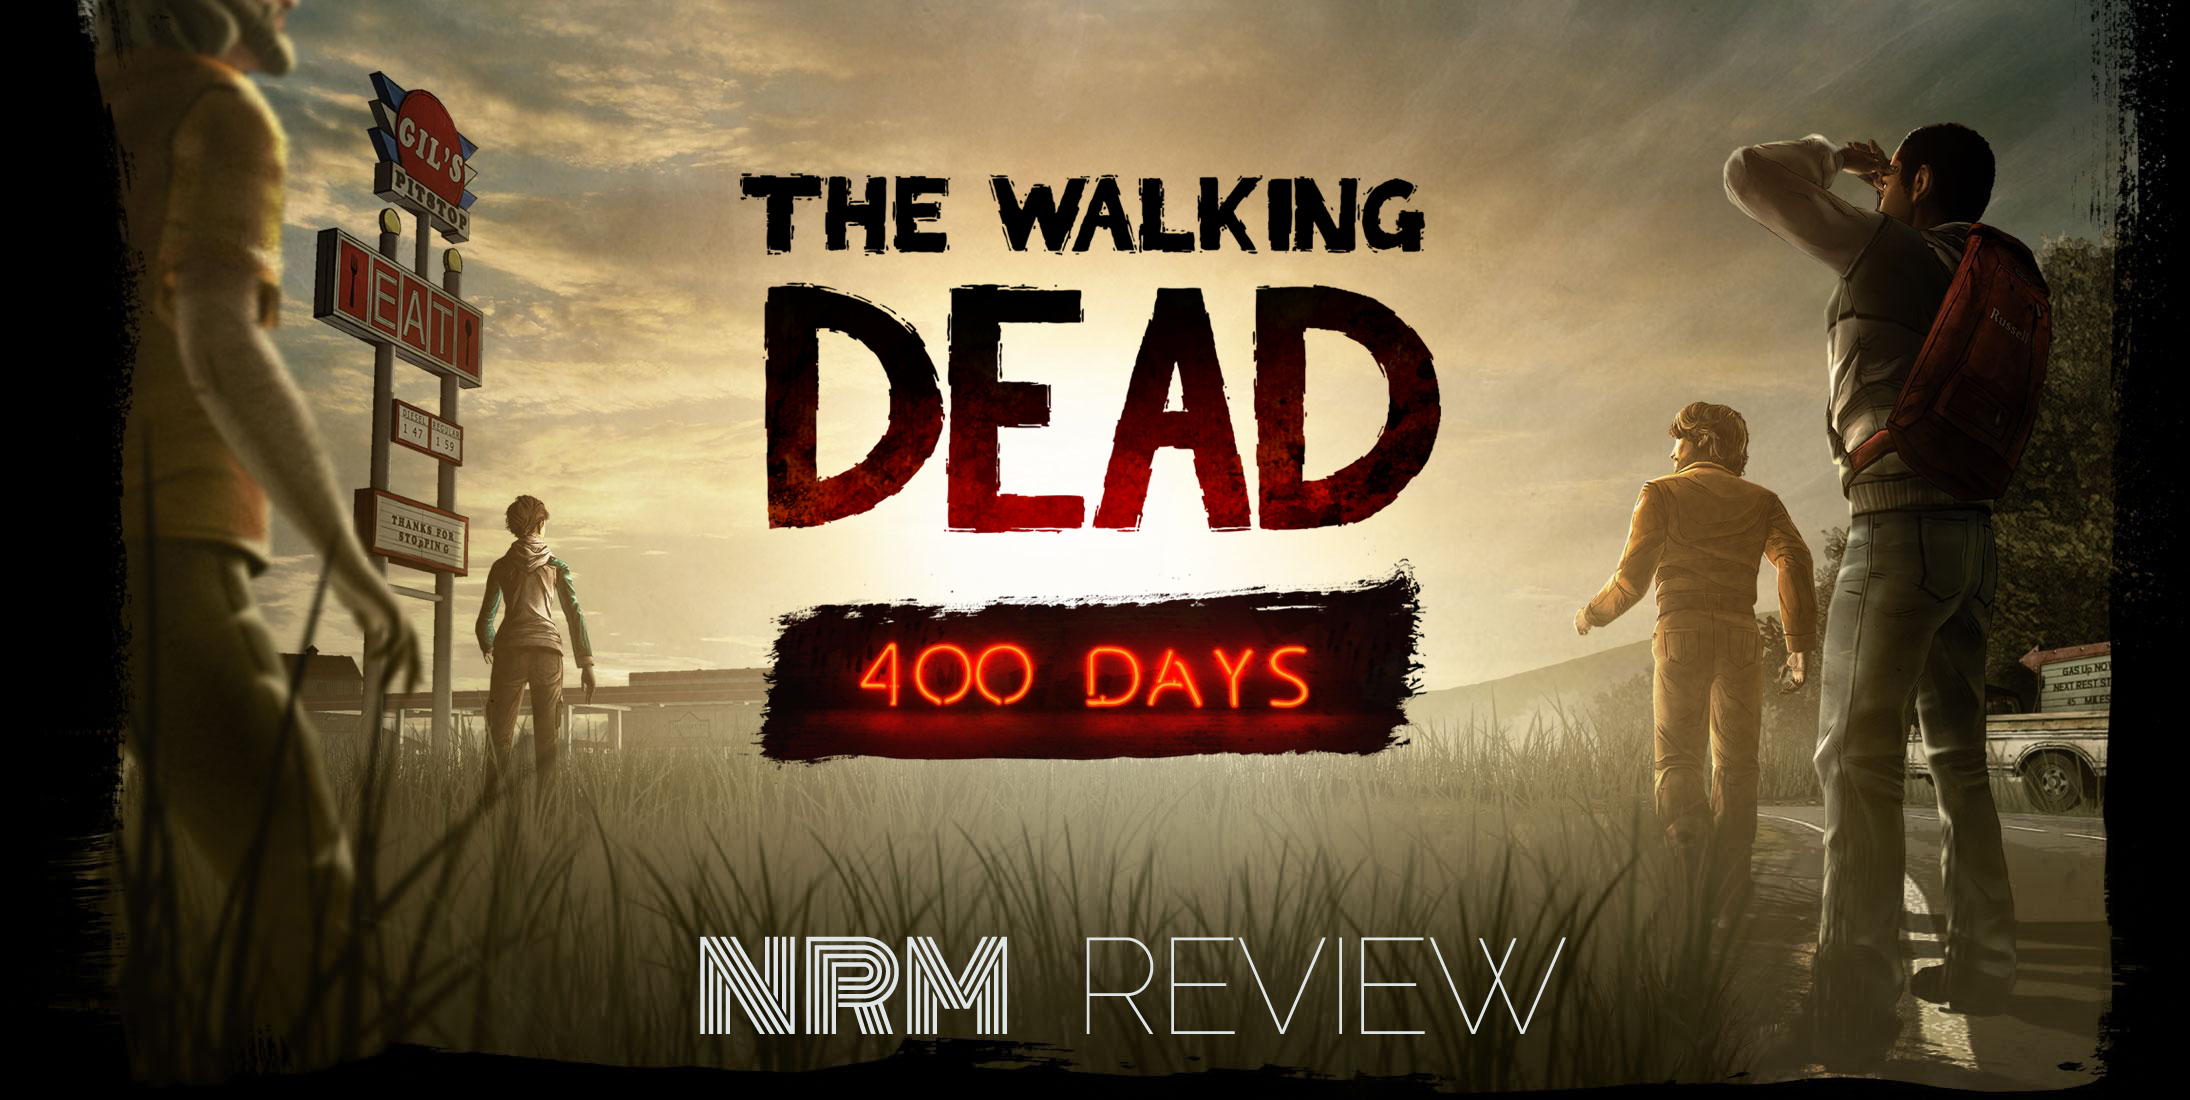 the walking dead 400 days review.jpg